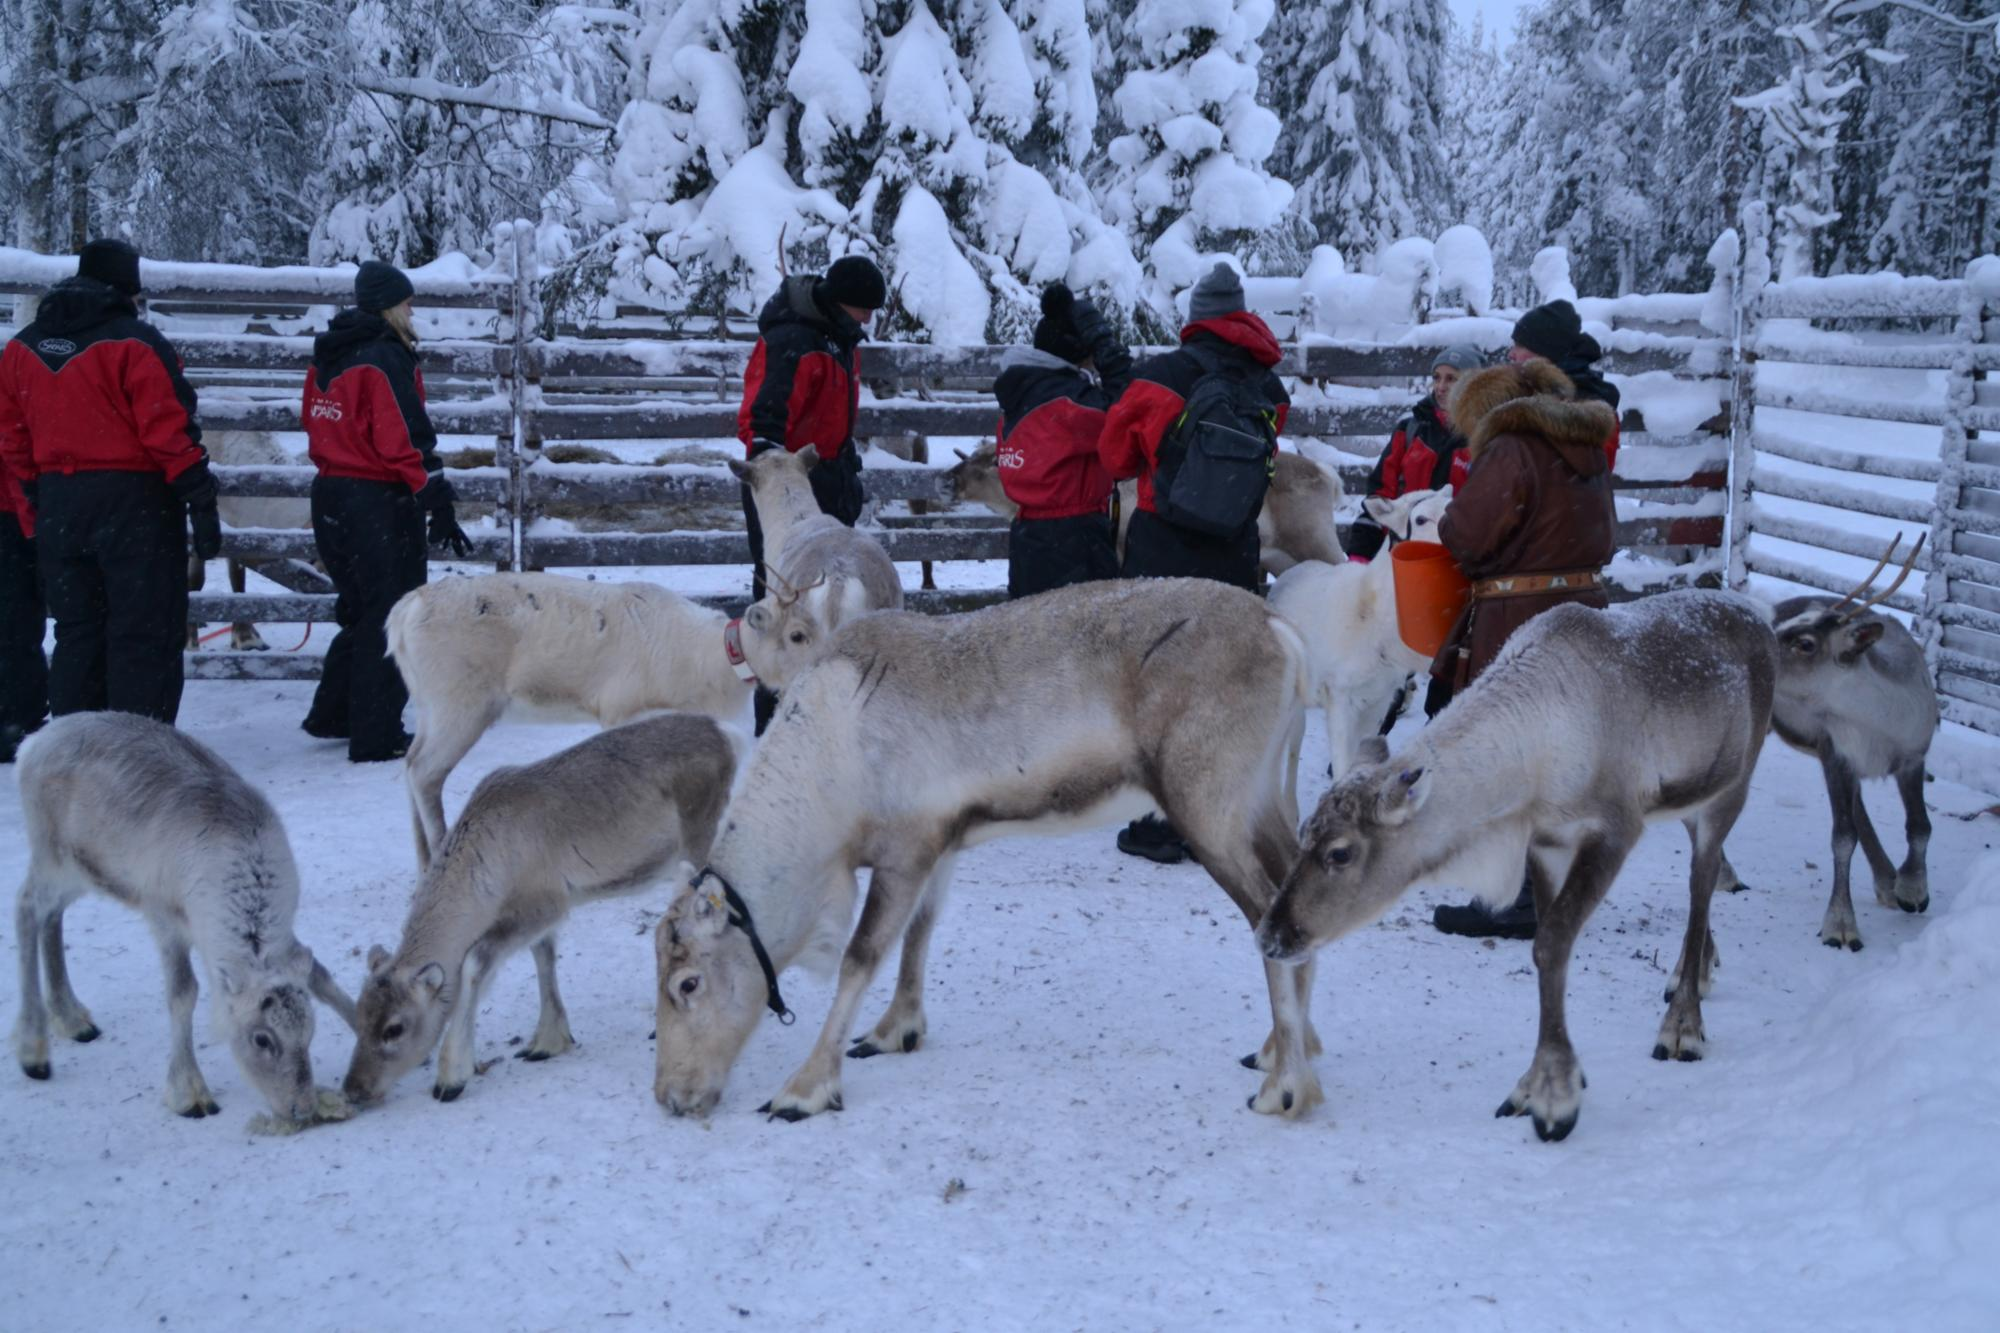 VISIT TO THE REINDEER FARM (BASIC)